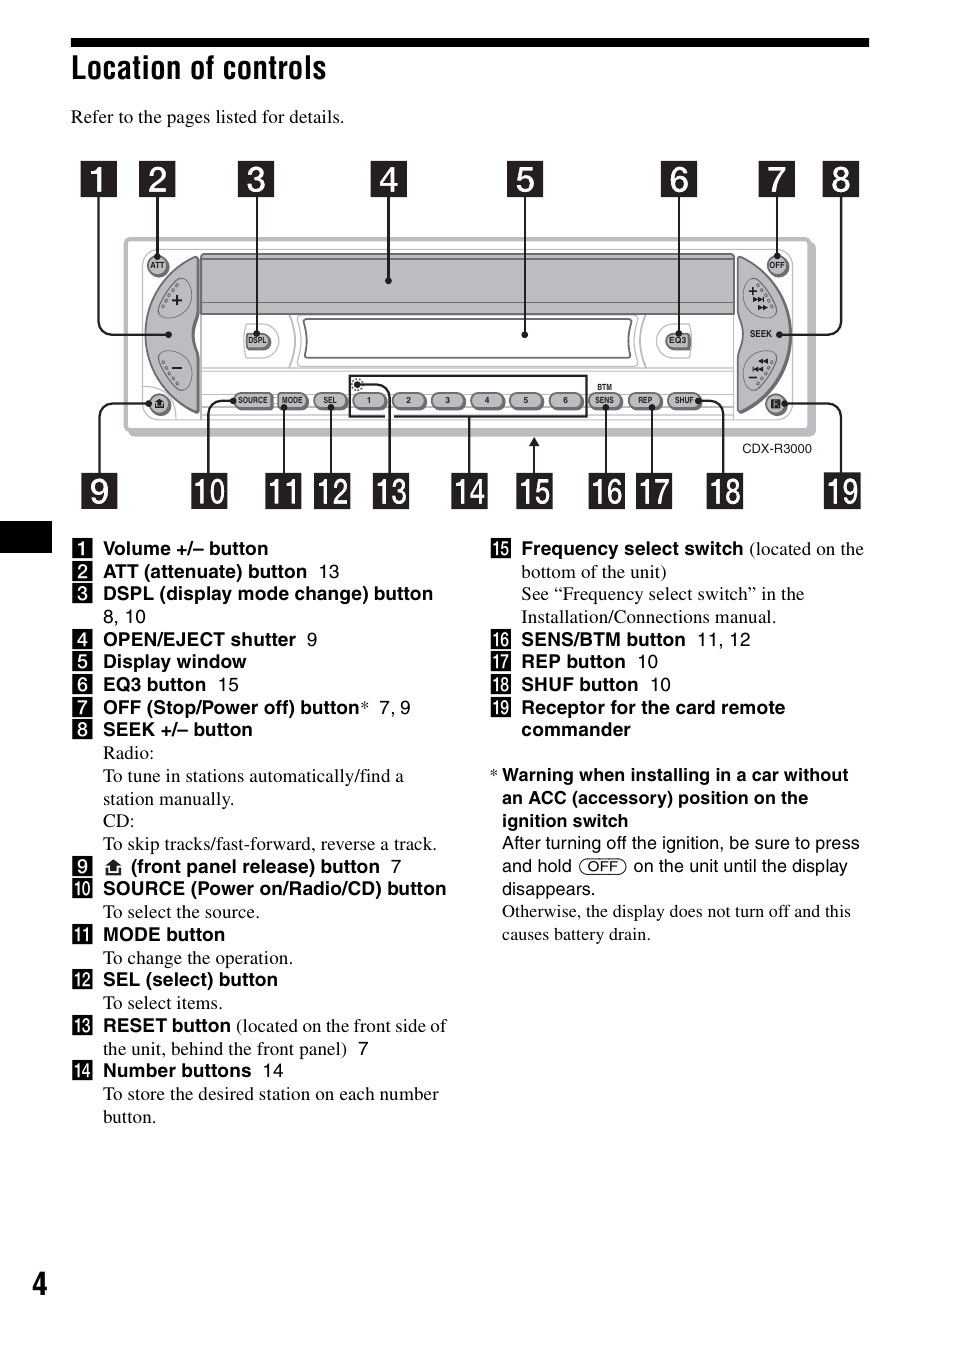 Sony Cdx R3000 Wiring Diagram For - Wiring Diagram Database •